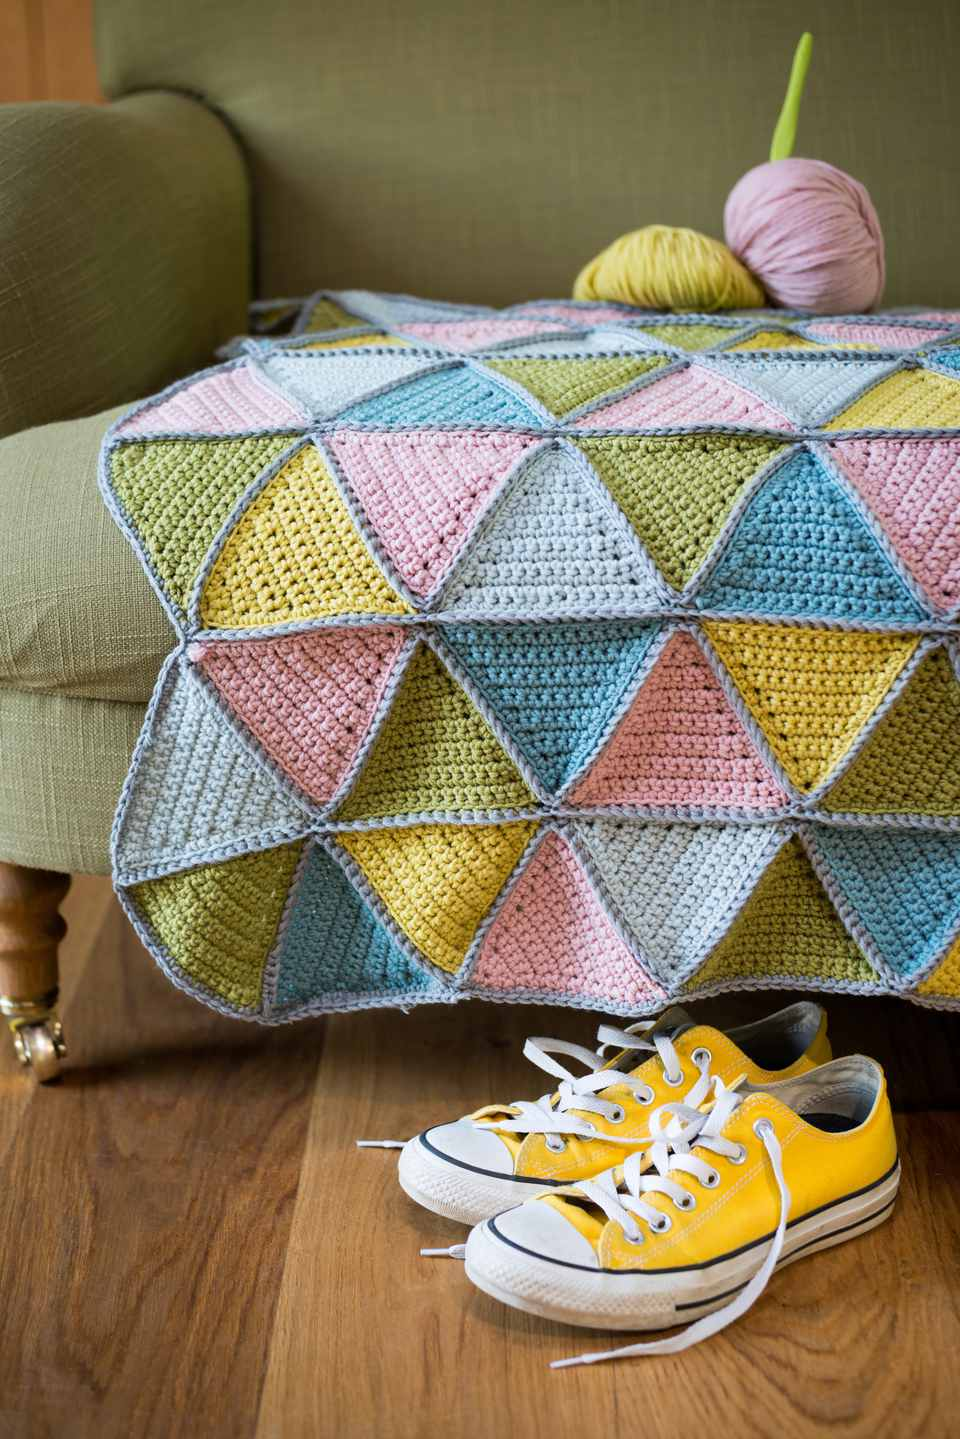 Yellow Sneakers Under Couch with Yarn and Knitted Woolen Mat